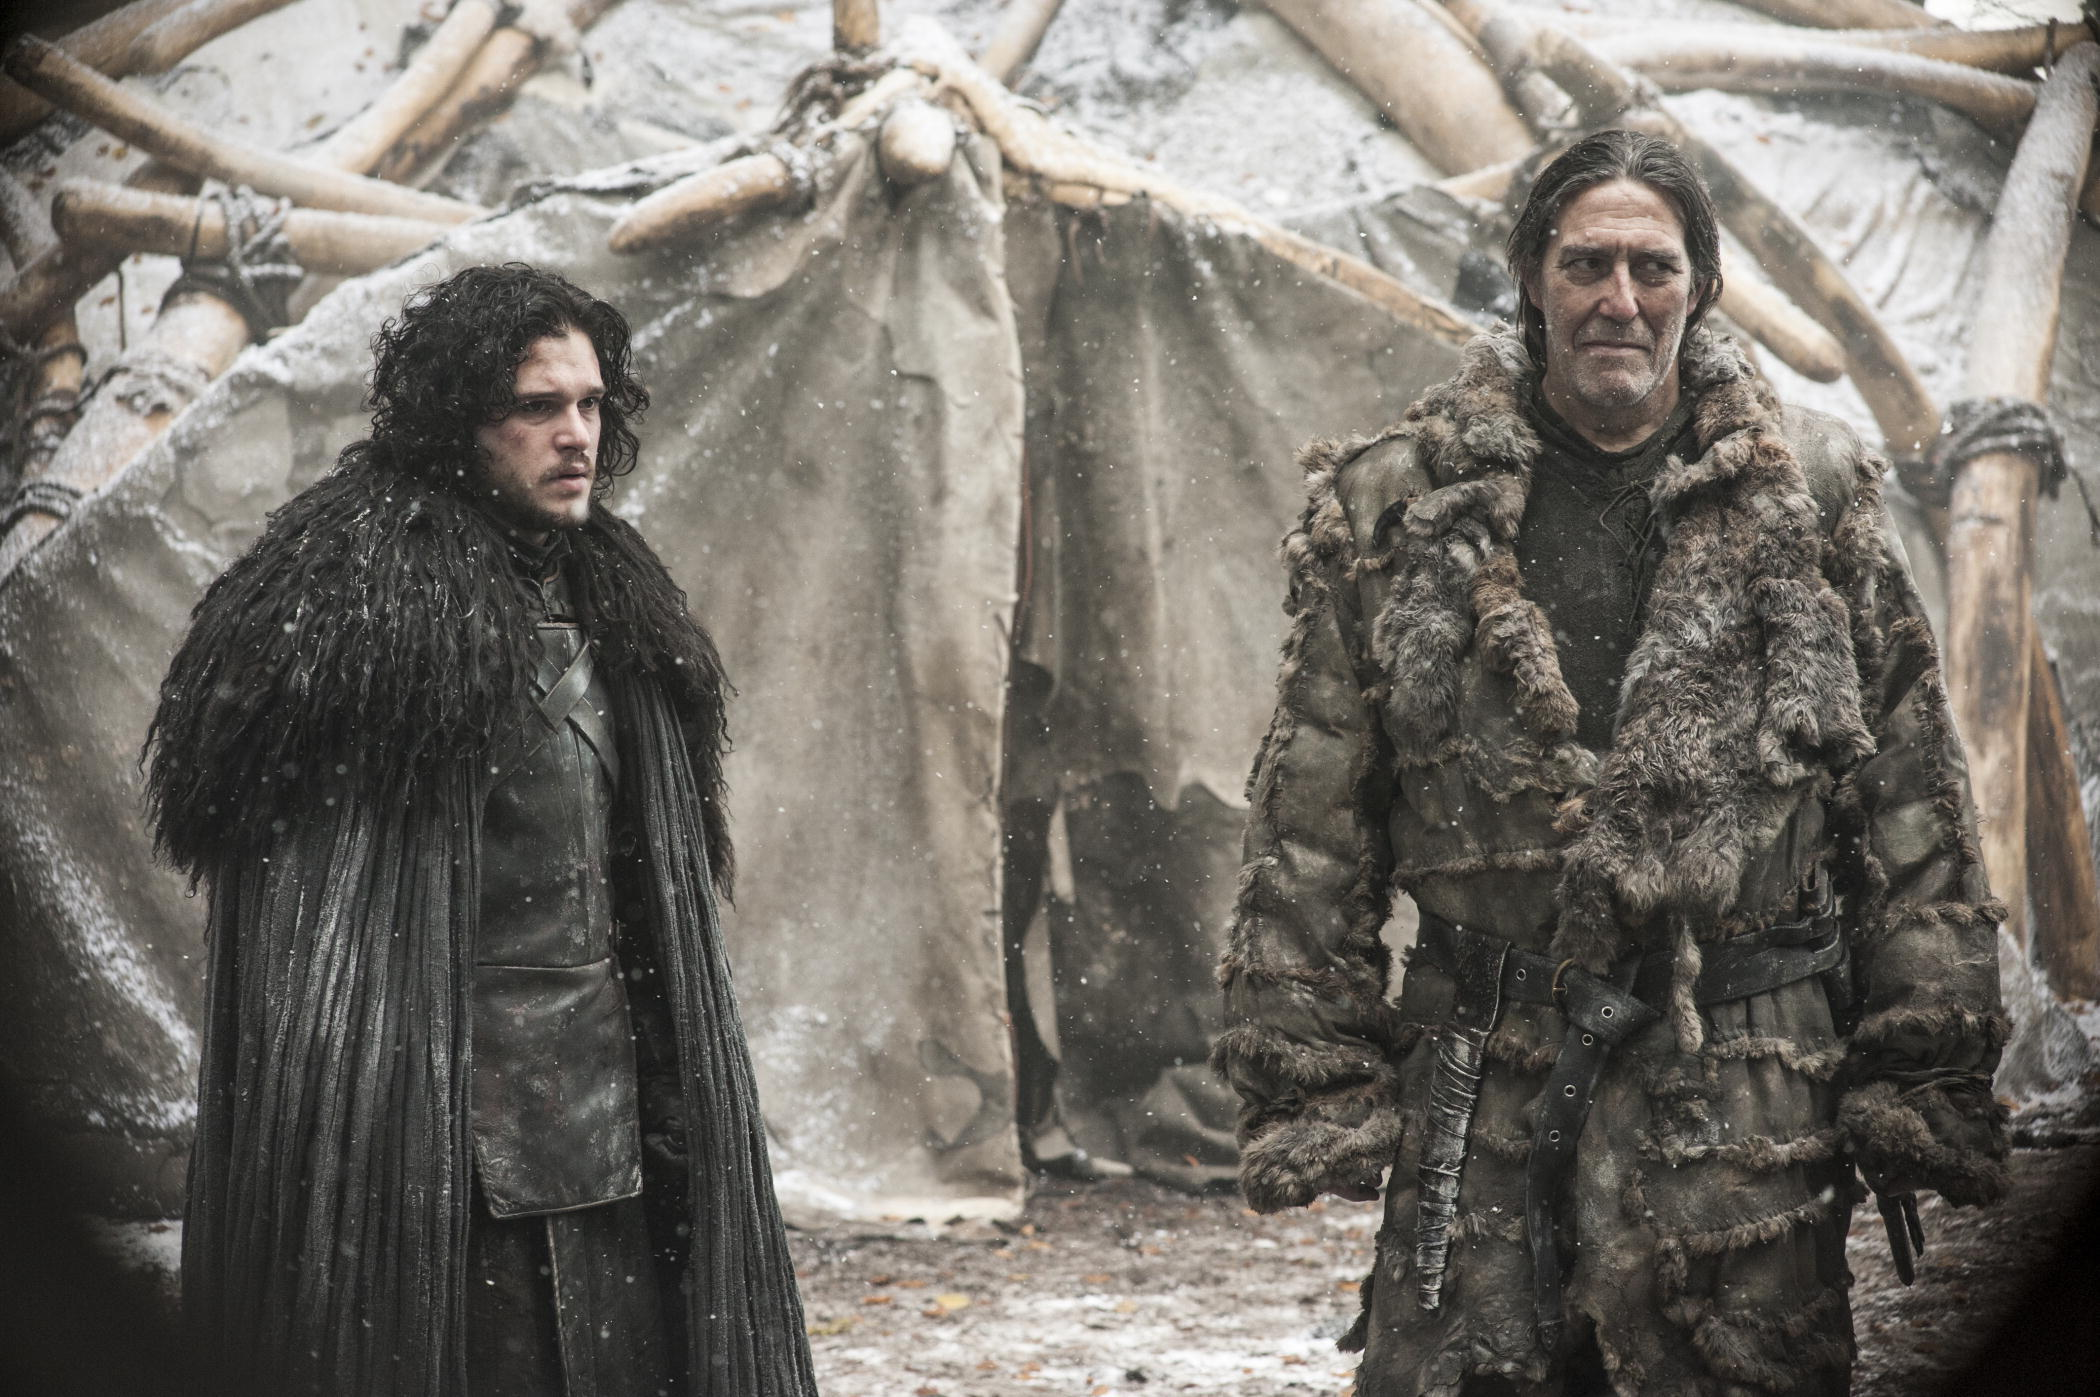 """In this image released by HBO, Jon Snow, portrayed by Kit Harington, left, appears with Mance Rayder, portrayed by Ciaran Hinds in a scene from season four of """"Game of Thrones."""" The season five premiere airs on Sunday. (AP Photo/HBO, Helen Sloan) 